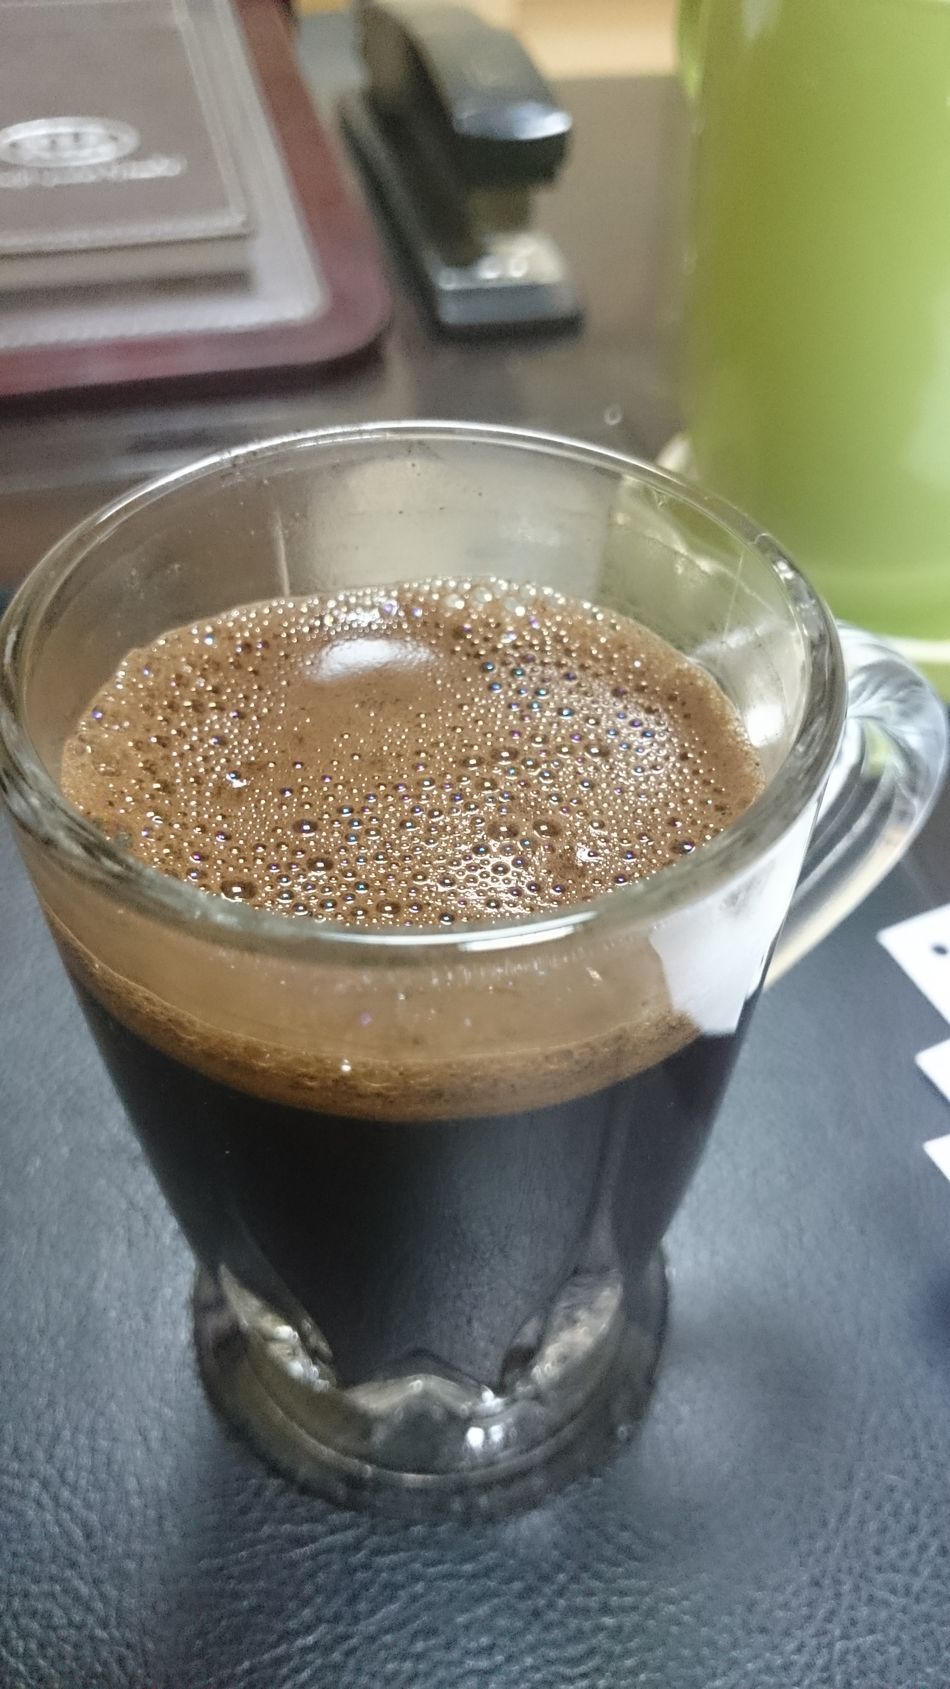 Close-up Coffee Day Drink Food And Drink Freshness High Angle View Indoors  Morning Coffee. No People Refreshment Table